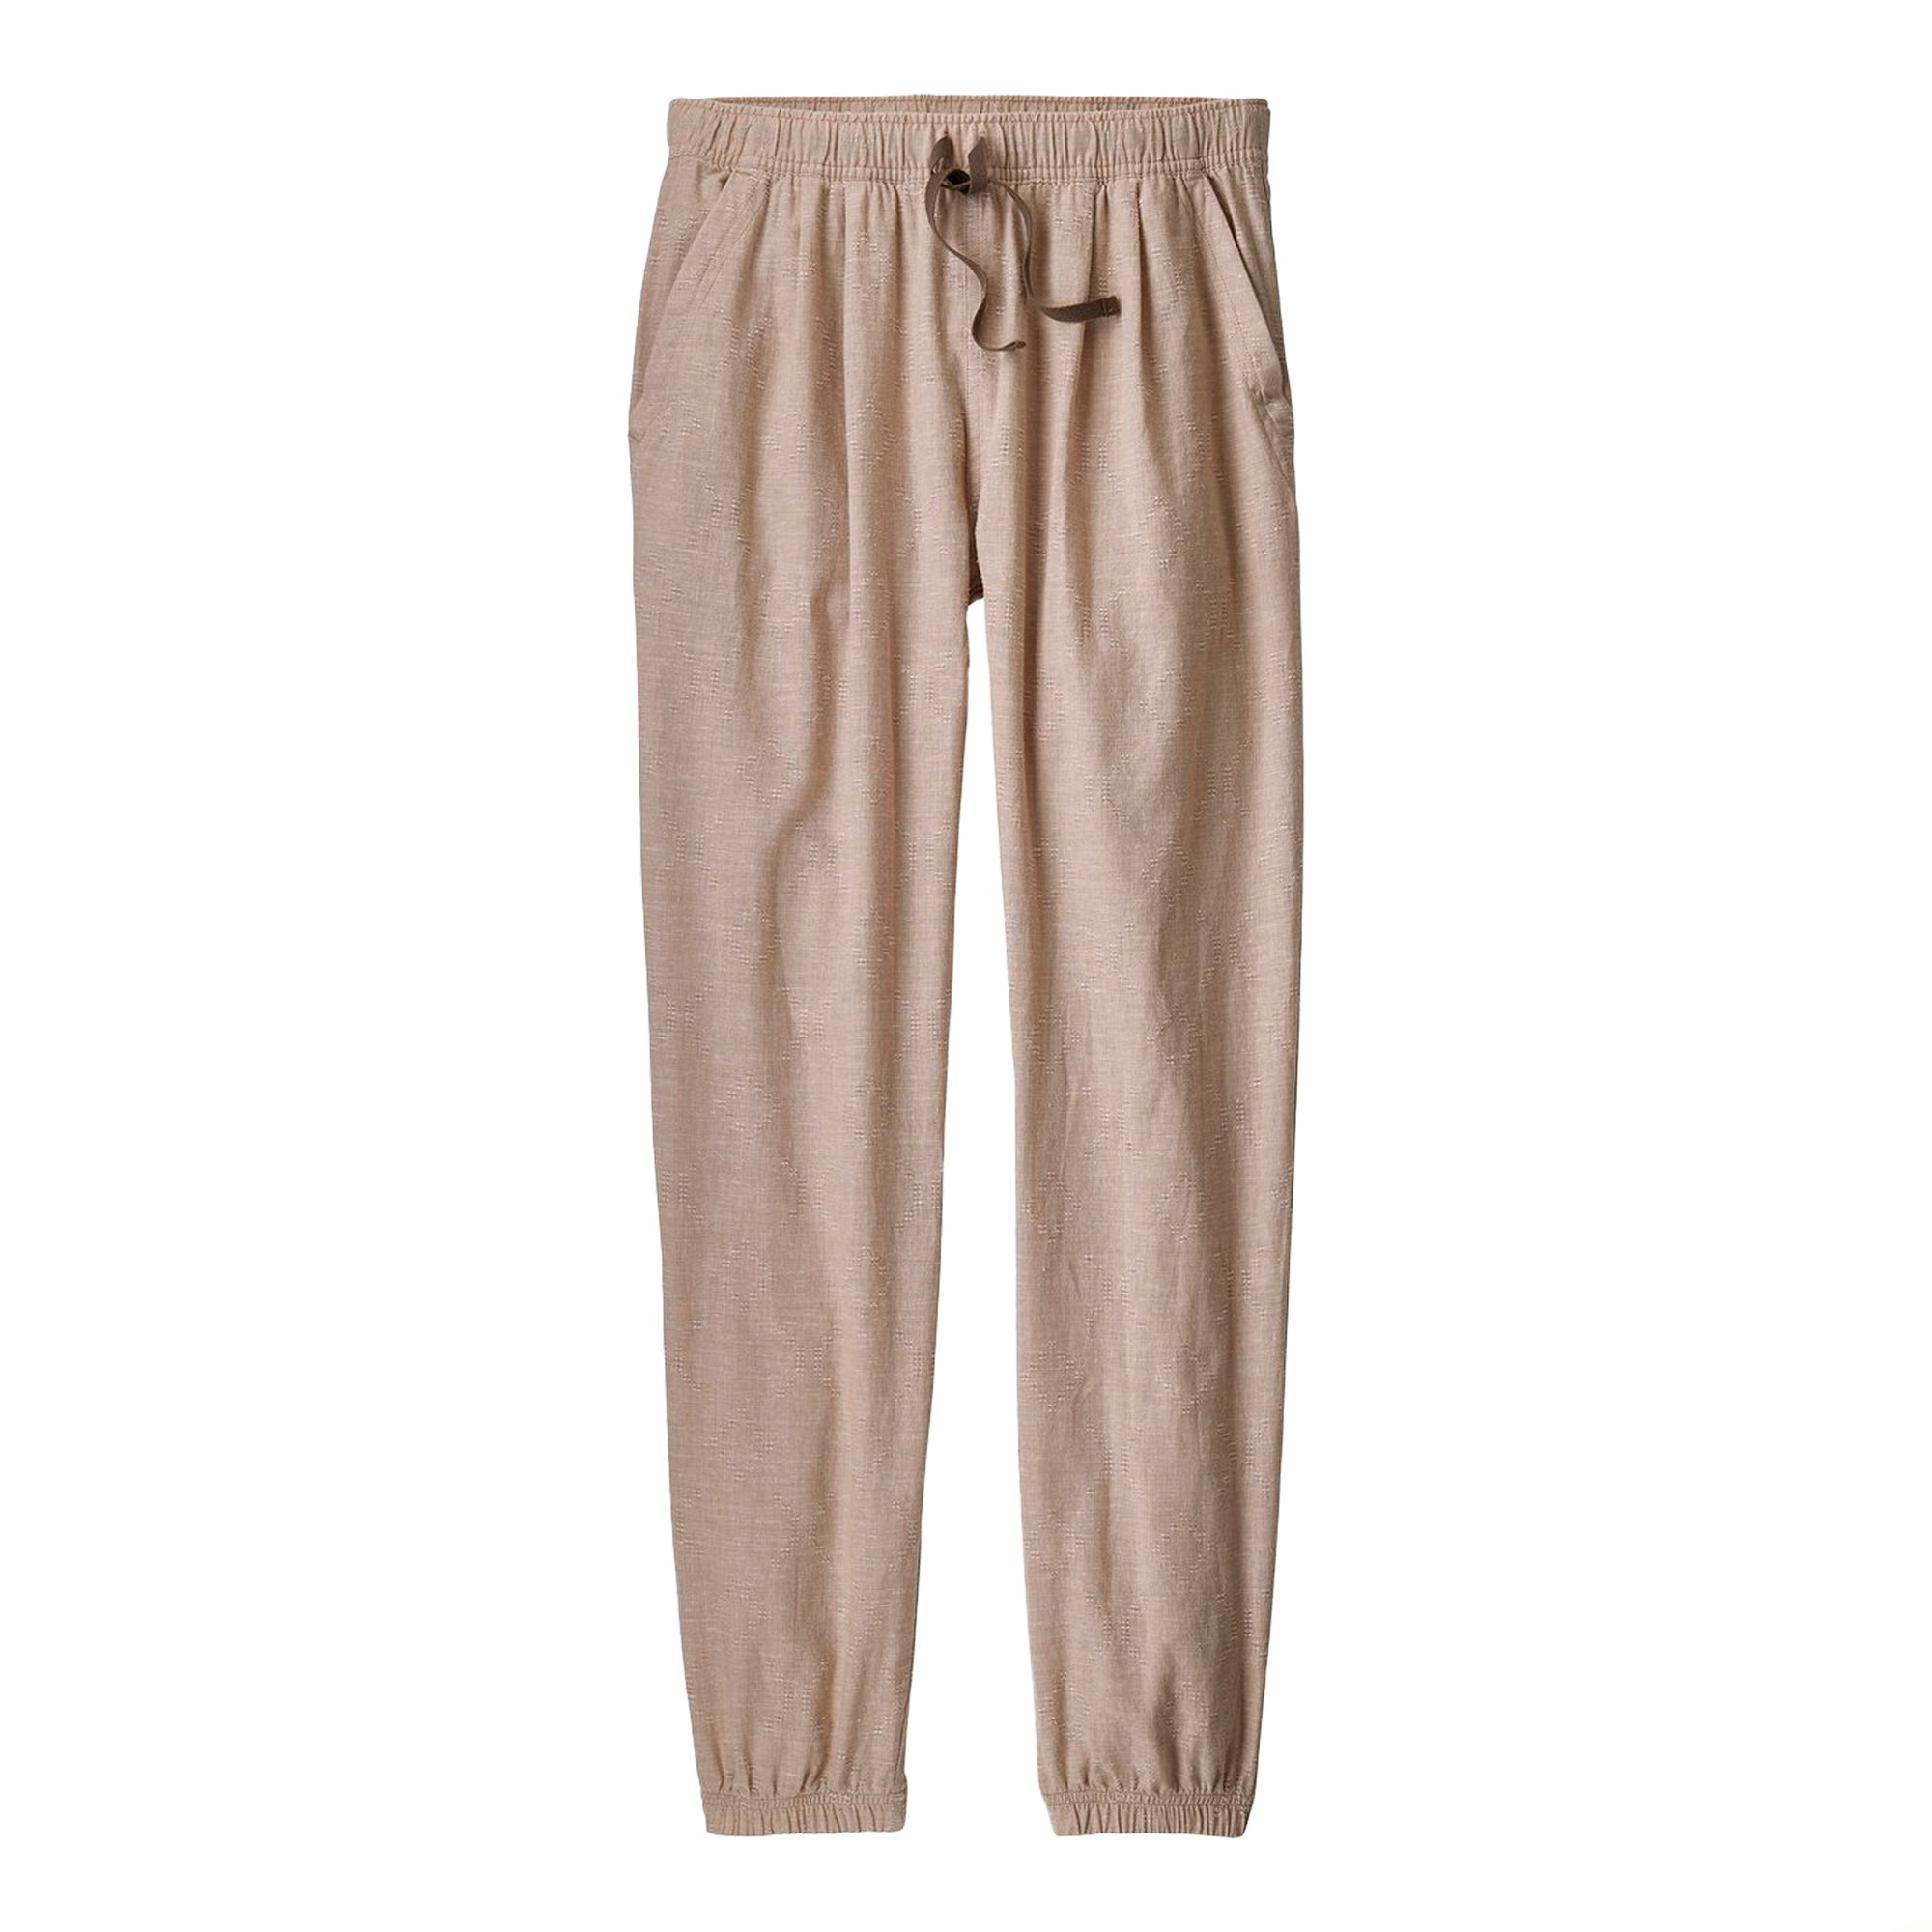 Patagonia Womens Island Hemp Beach Pants: Goshawk Dobby: Dark Pelican - The Union Project